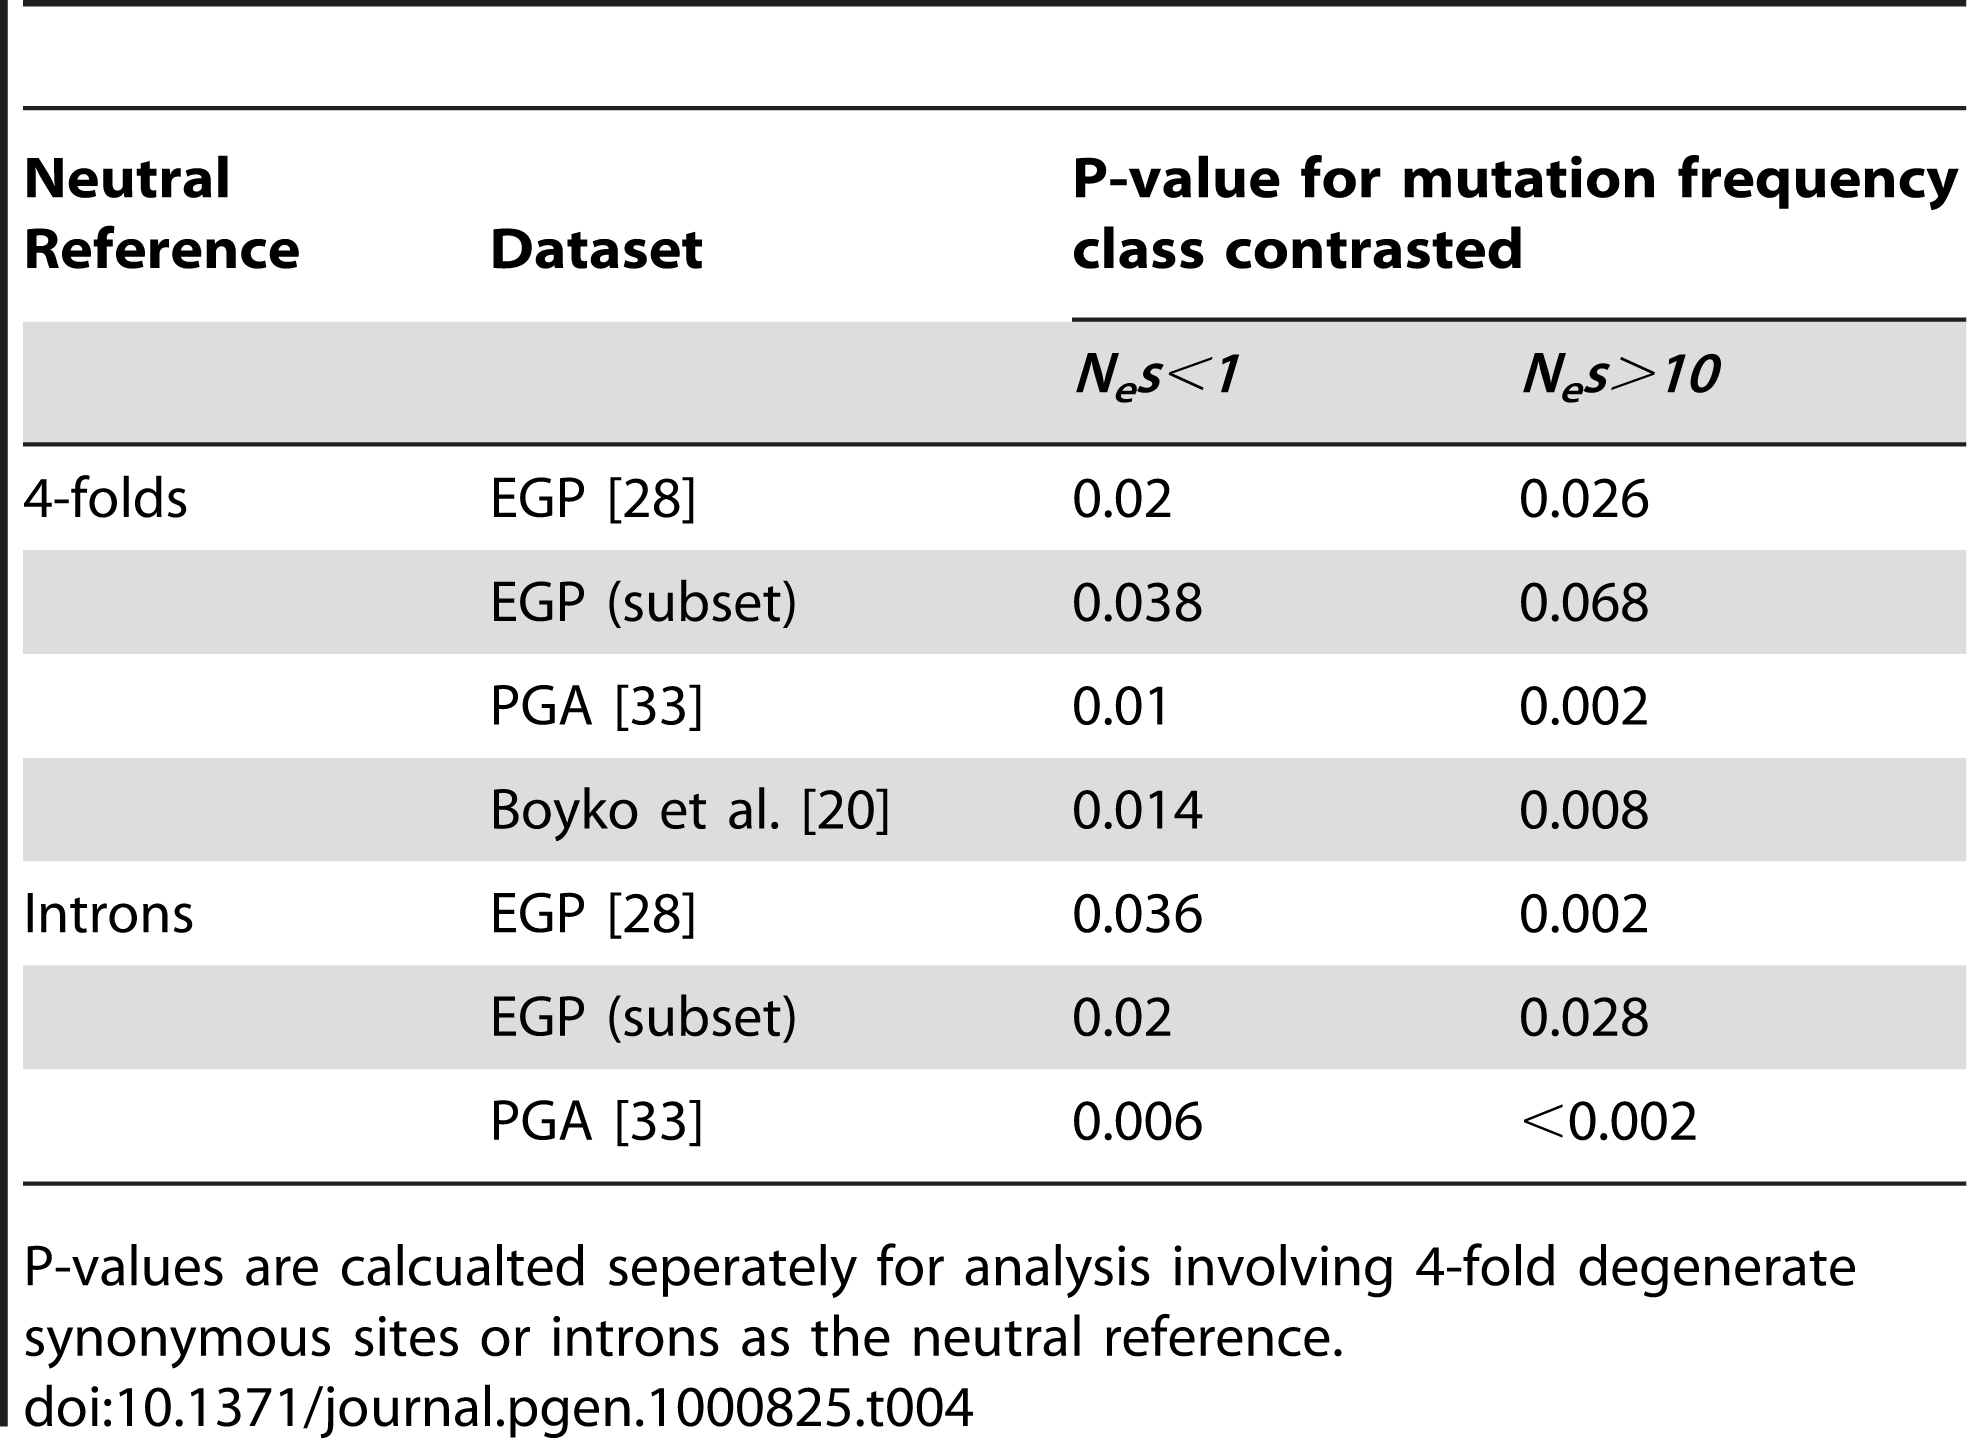 P-values for contrast between estimated frequencies of nearly neutral (<i>N<sub>e</sub>s</i>&lt;1) mutations and strongly deleterious (<i>N<sub>e</sub>s</i>&gt;10) mutations between <i>M. m. castaneus</i> and human datasets.